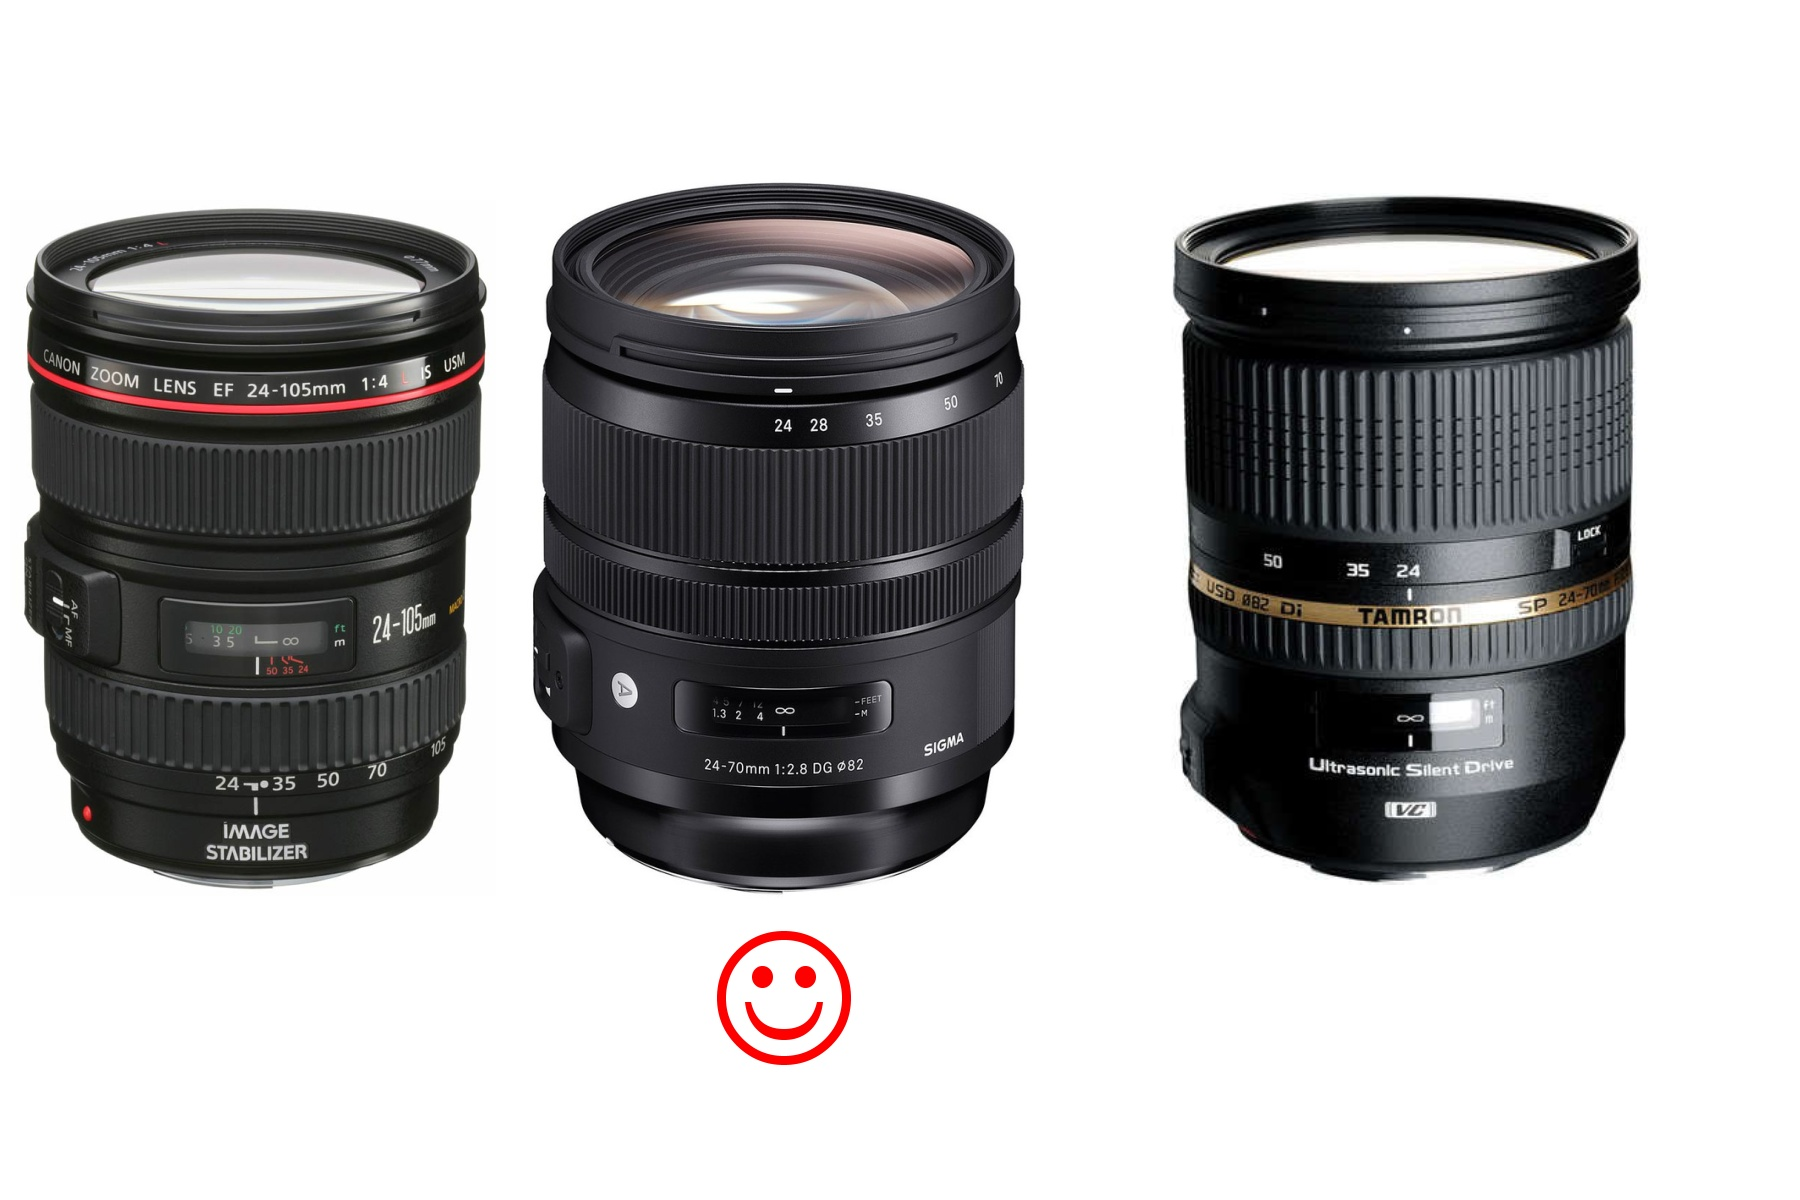 Canon 24-105 f4,0 vs  Sigma 24-70 f2,8 ART  vs  Tamron 24-70 f2,8